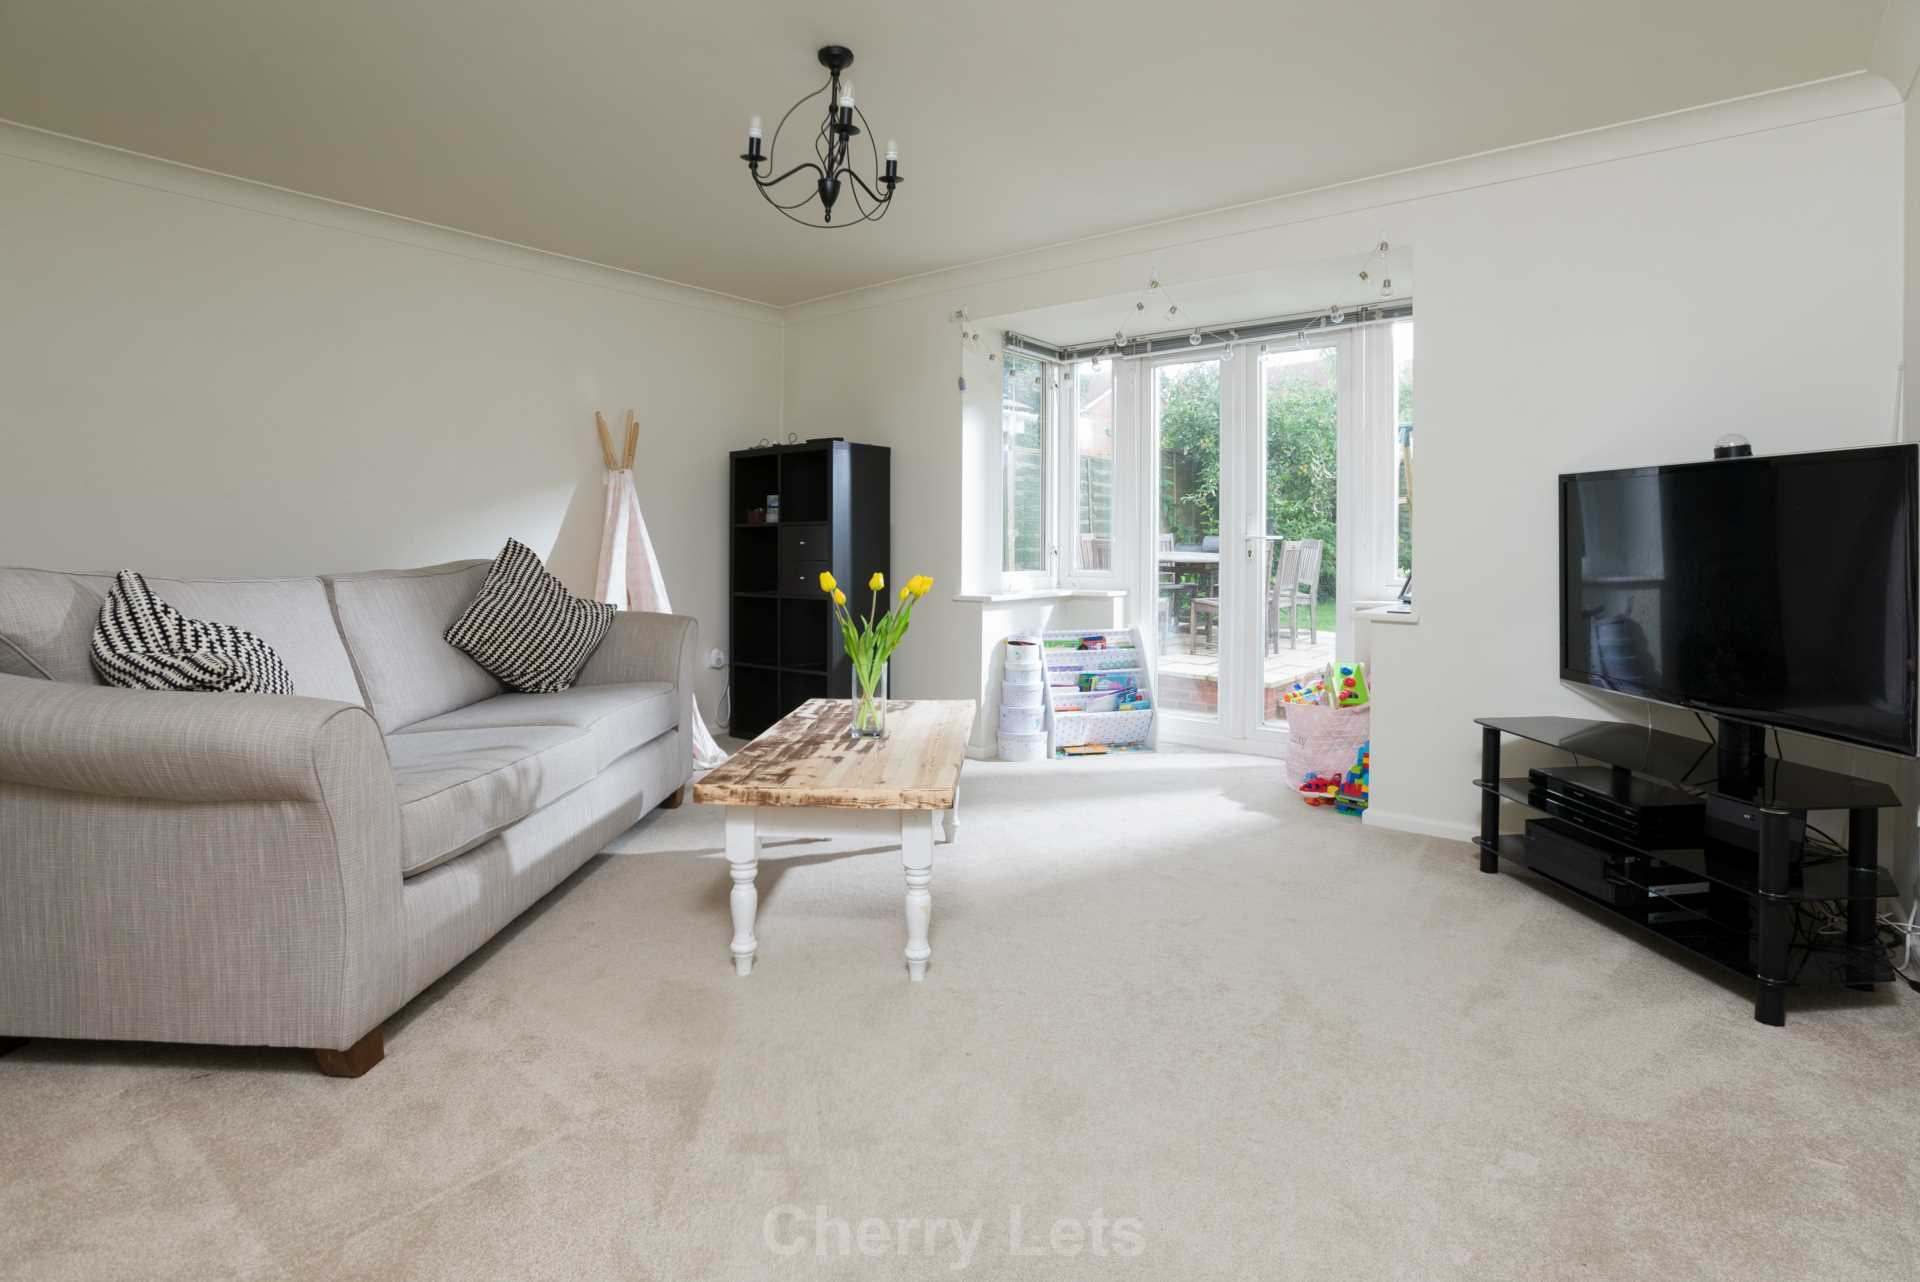 4 bed detached house to rent in Humphries Drive, Brackley, NN13  - Property Image 1